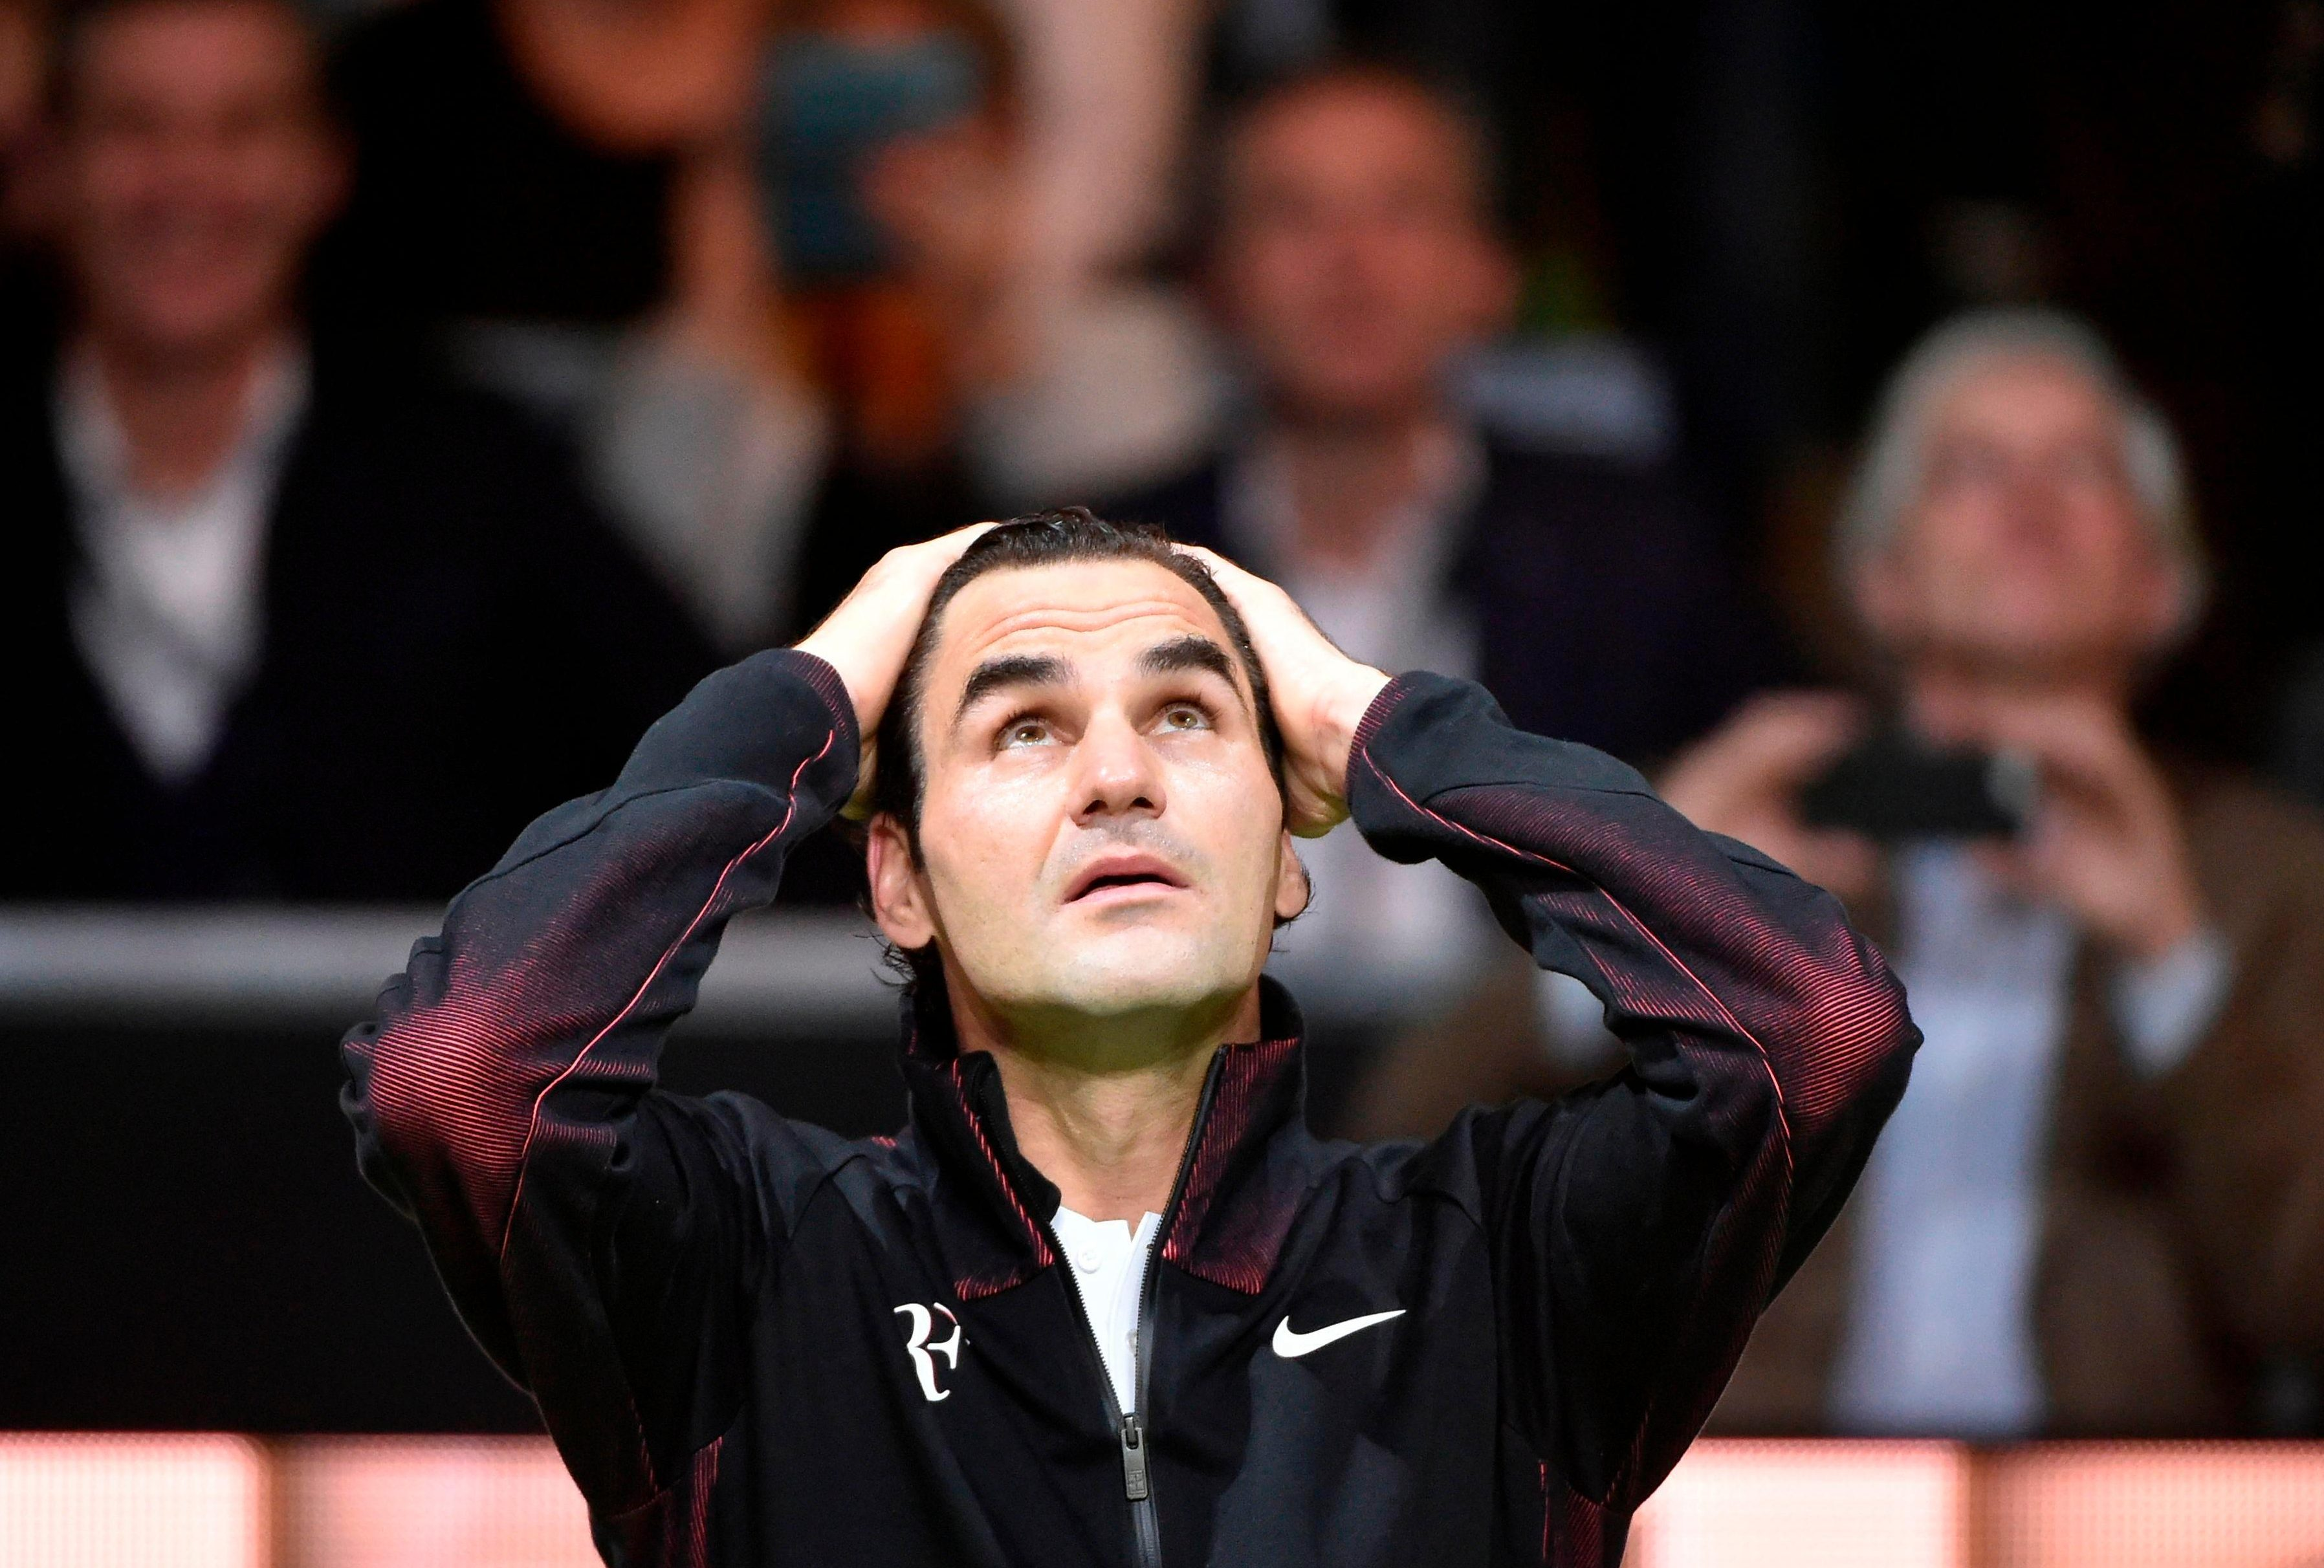 Things could not be looking up any better for Roger Federer as he became No 1